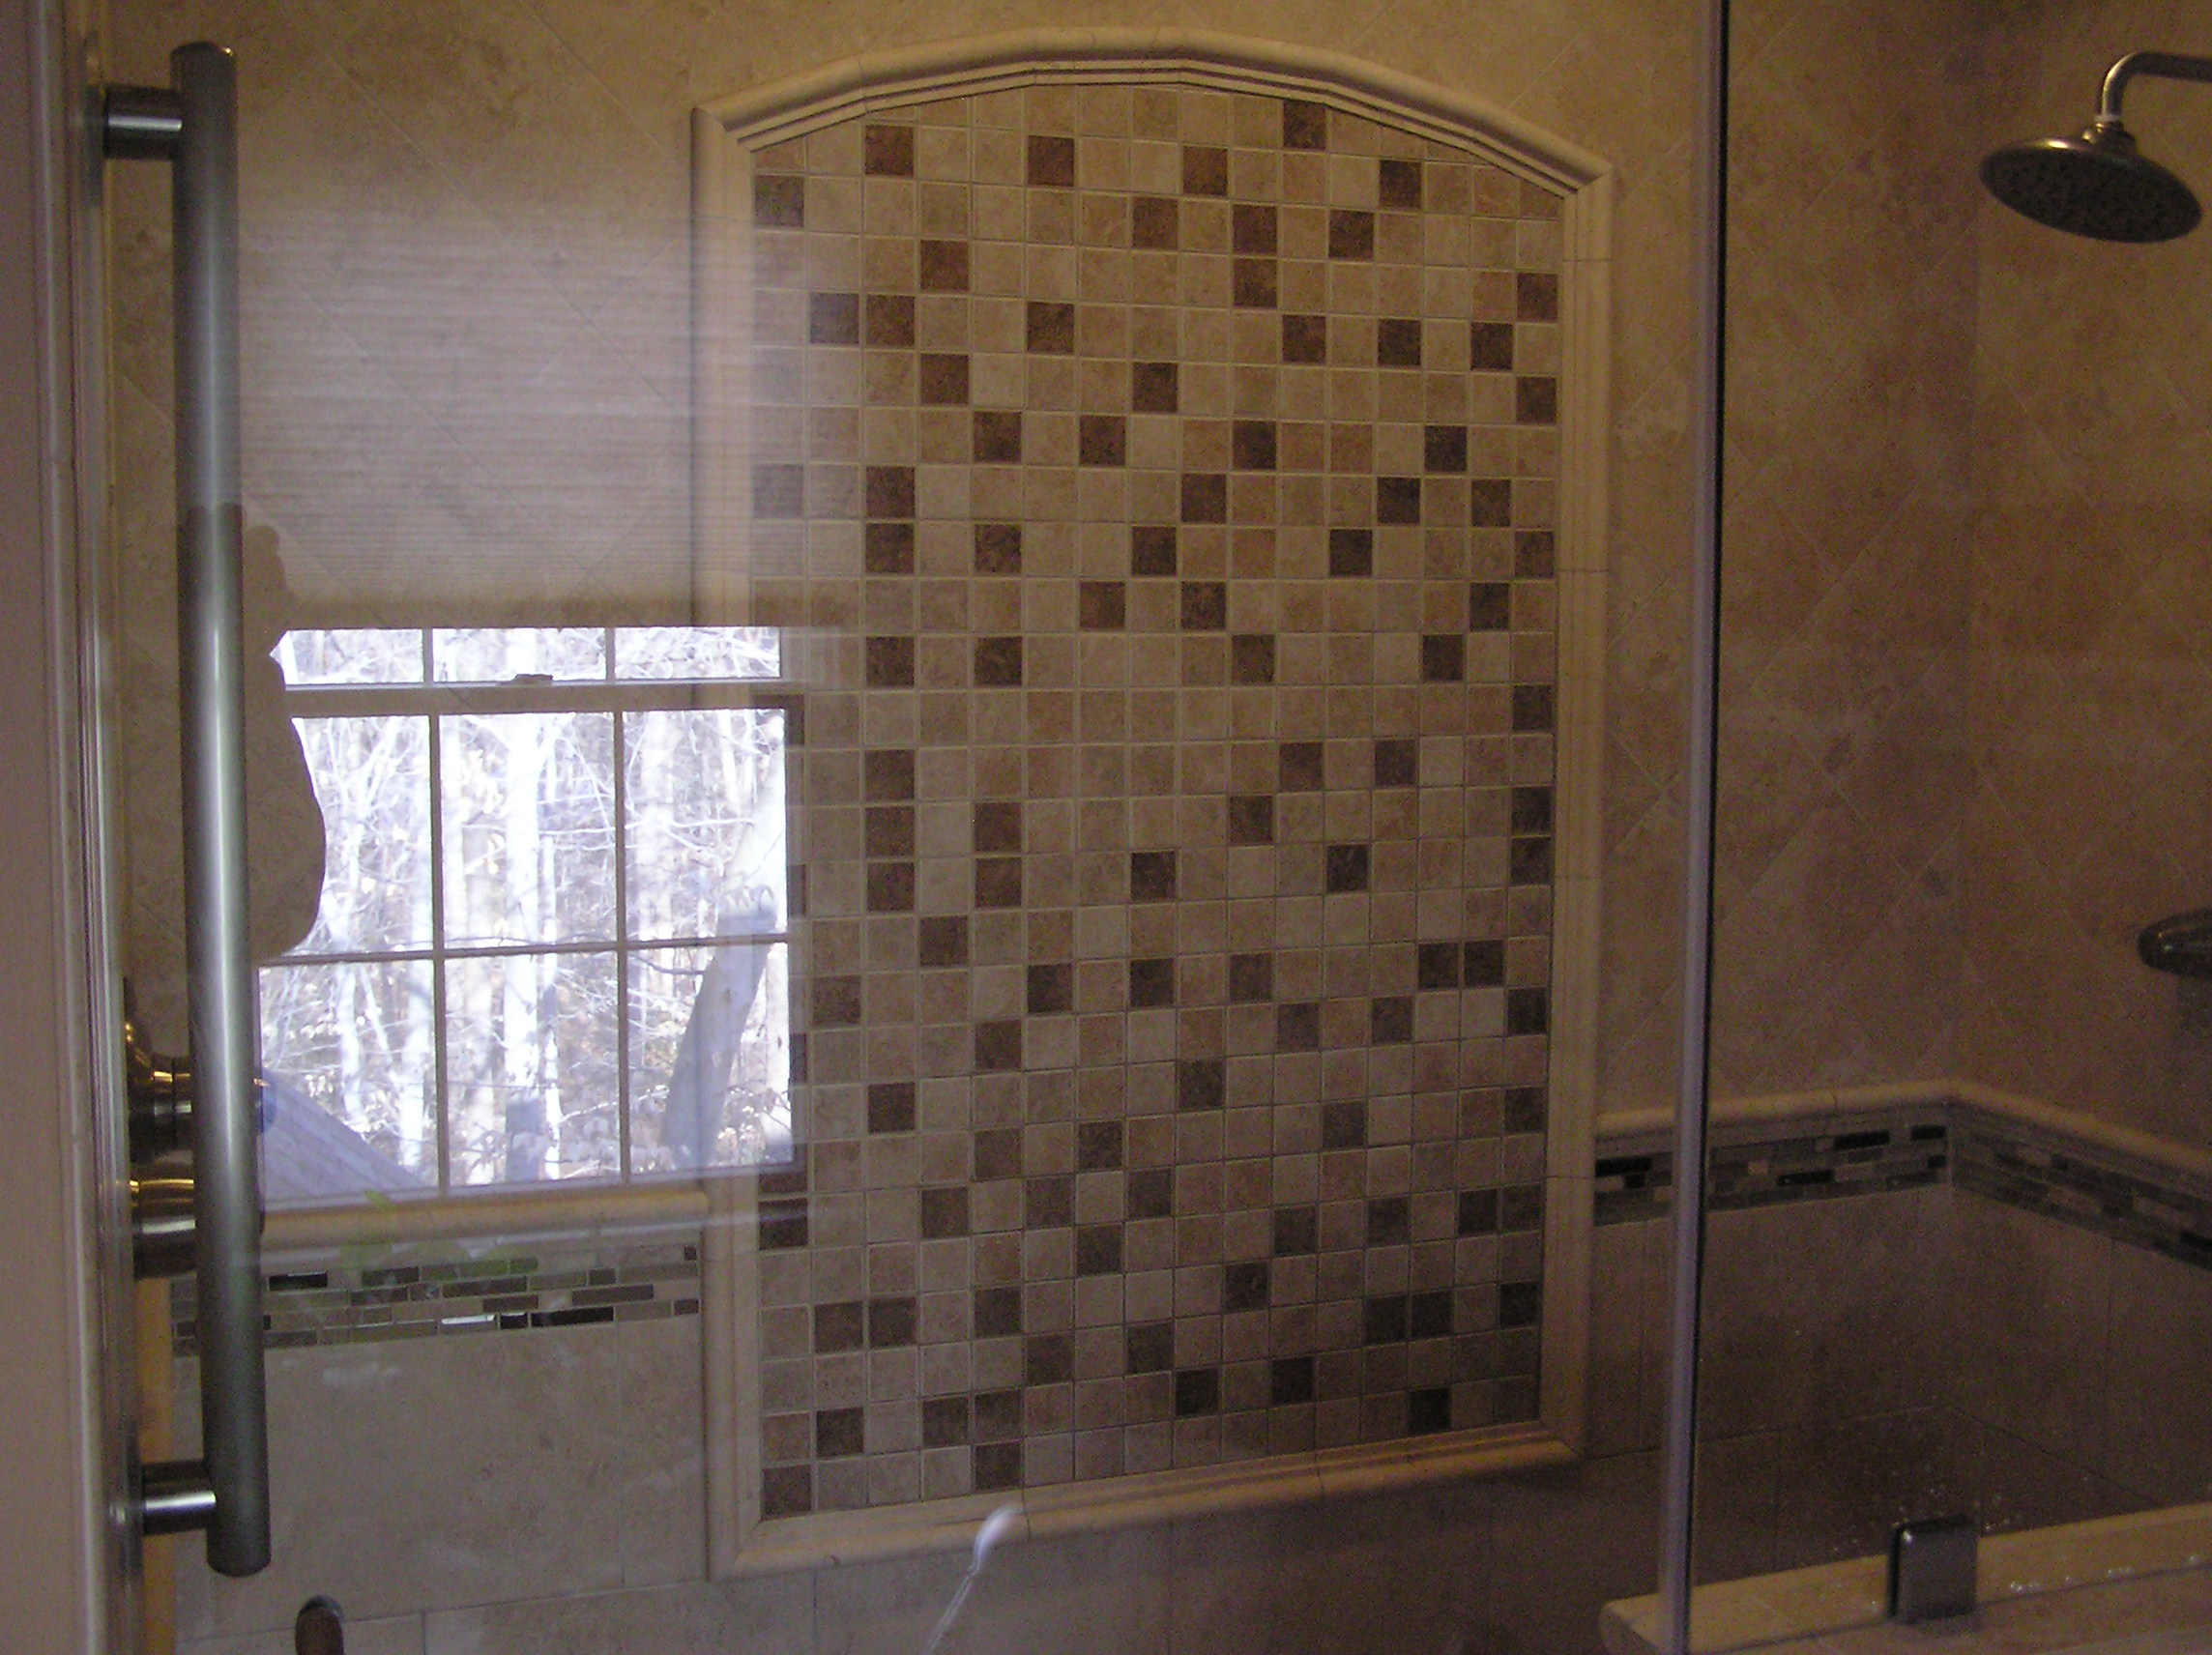 40 wonderful pictures and ideas of 1920s bathroom tile designs for Bathroom ideas no tiles